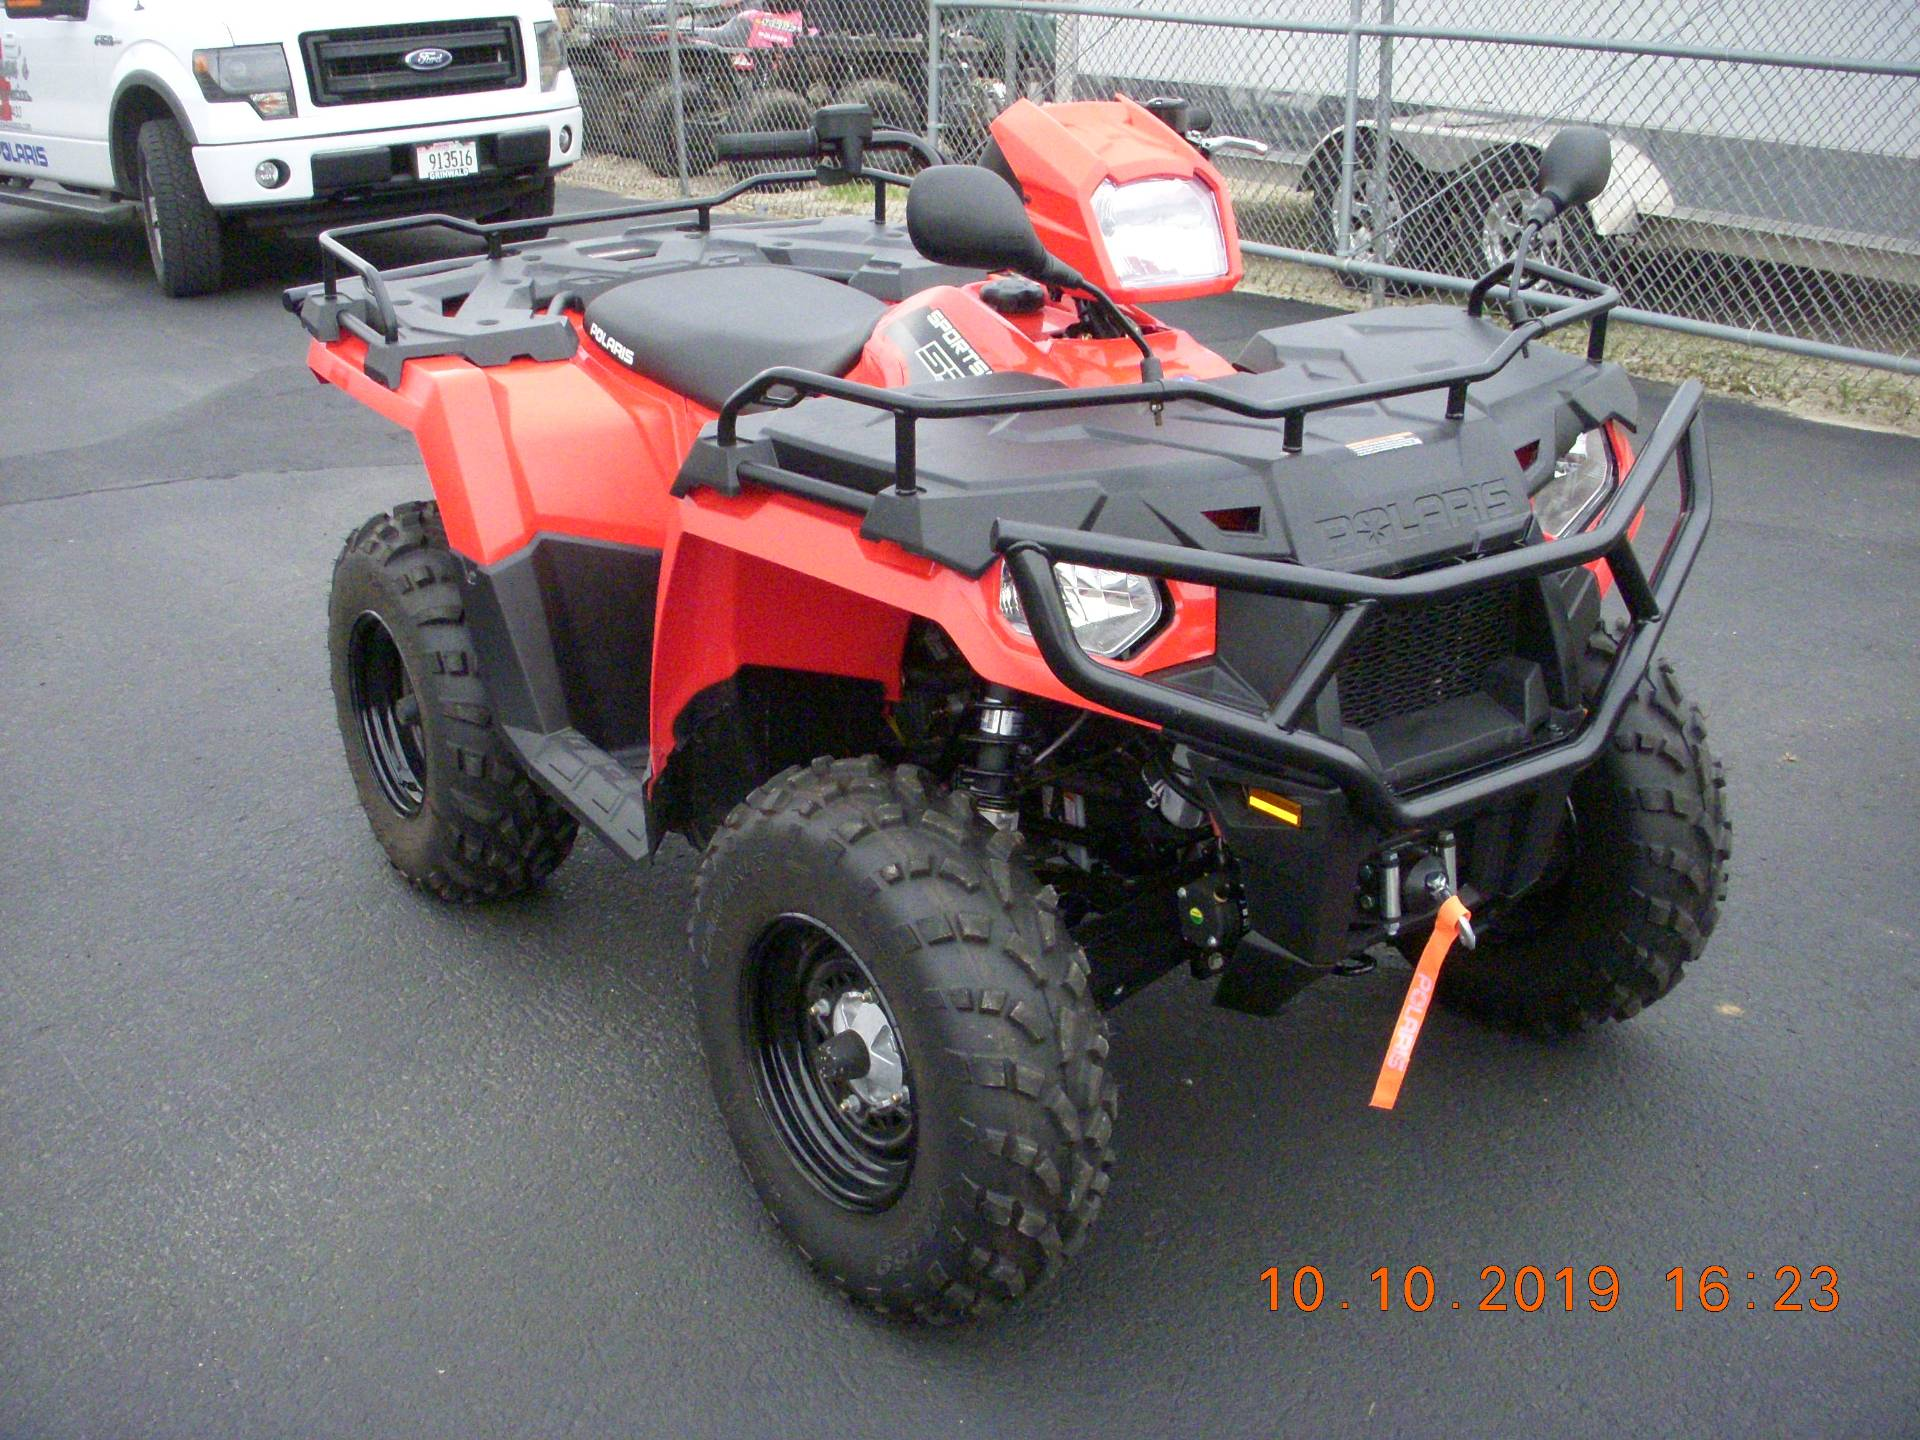 2018 Polaris Sportsman 570 in Clyman, Wisconsin - Photo 2